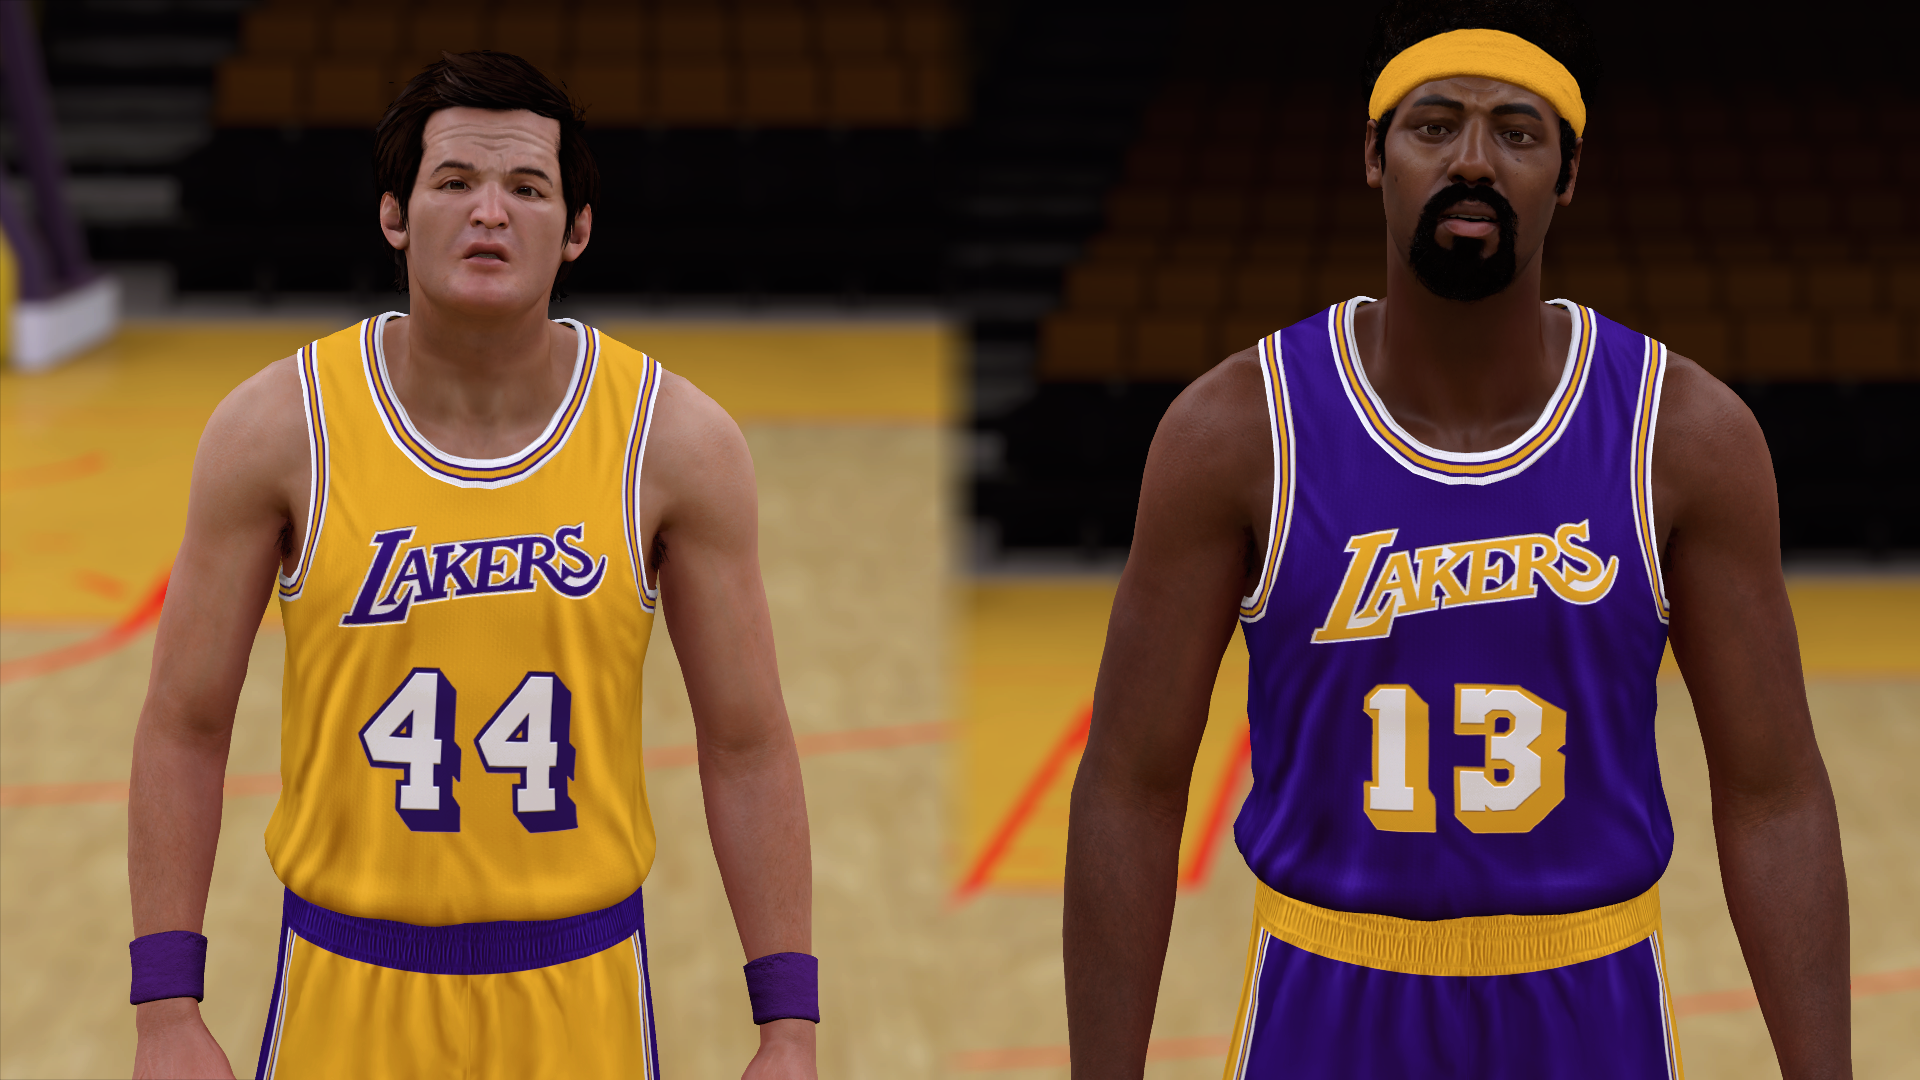 1971-1972 Lakers Jerseys - PeacemanNOT